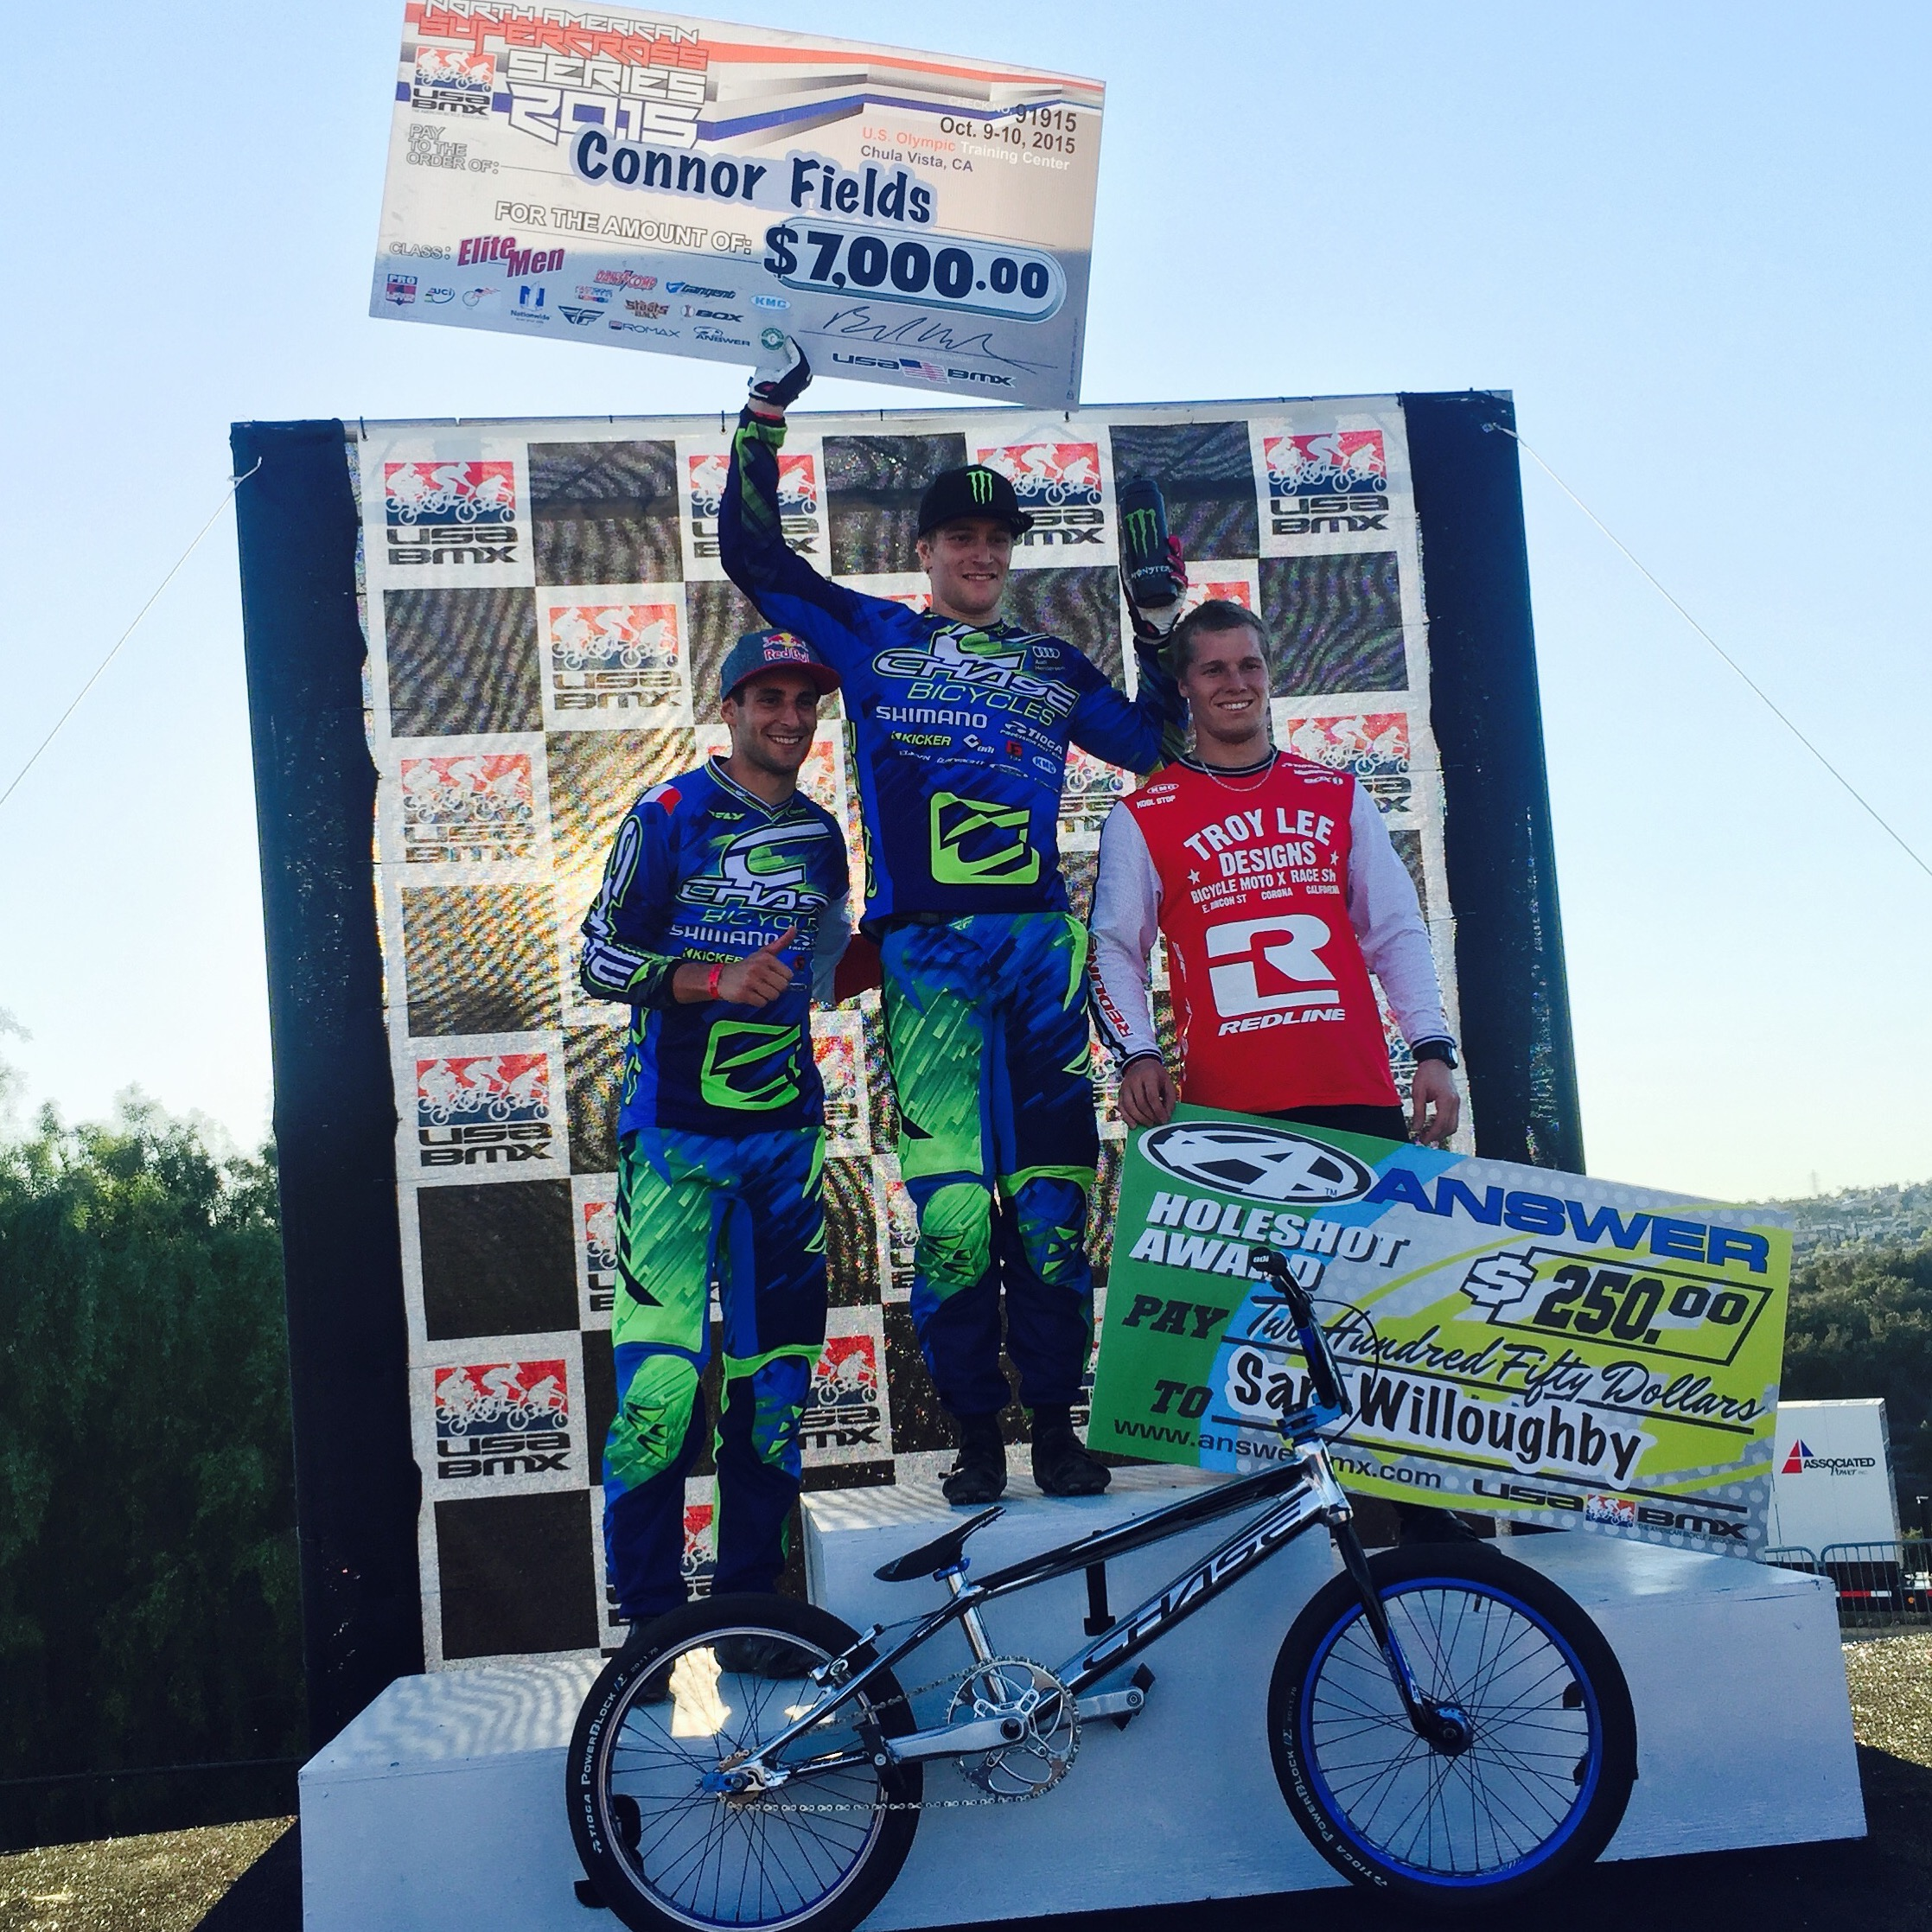 Connor Fields & Joris Daudet both win at the USA BMX North American SX Series!